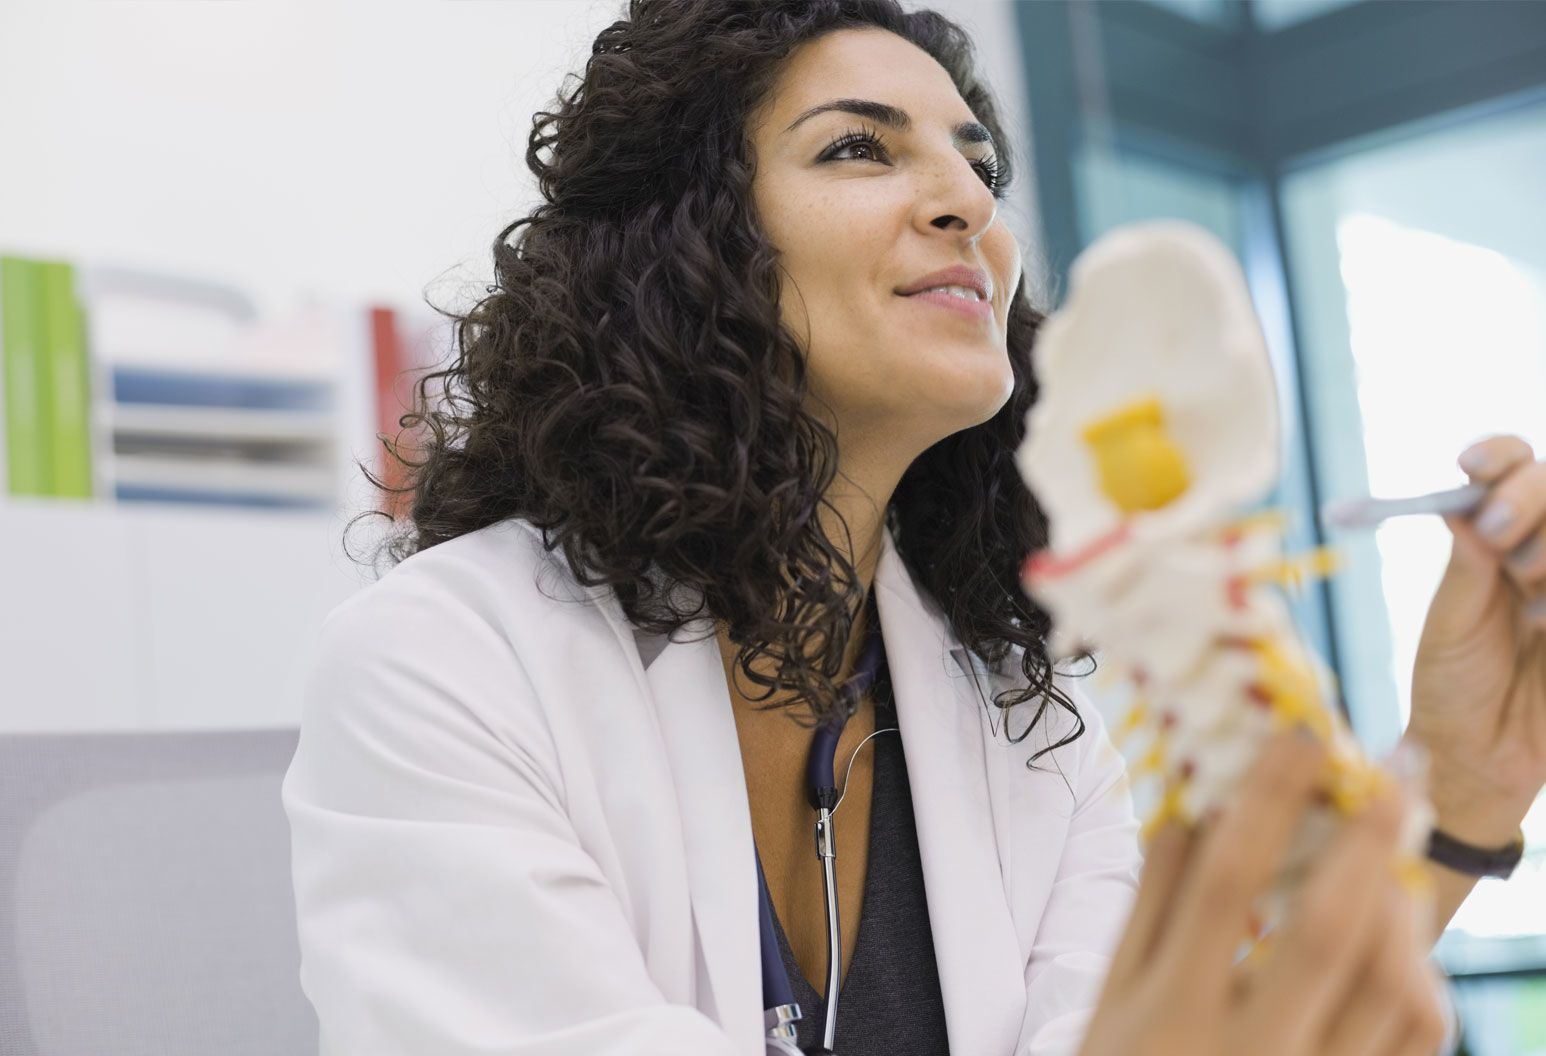 A female doctor holds a model of a spine and looks out of camera. She has dark, curly hair and wears a stethoscope around her neck.